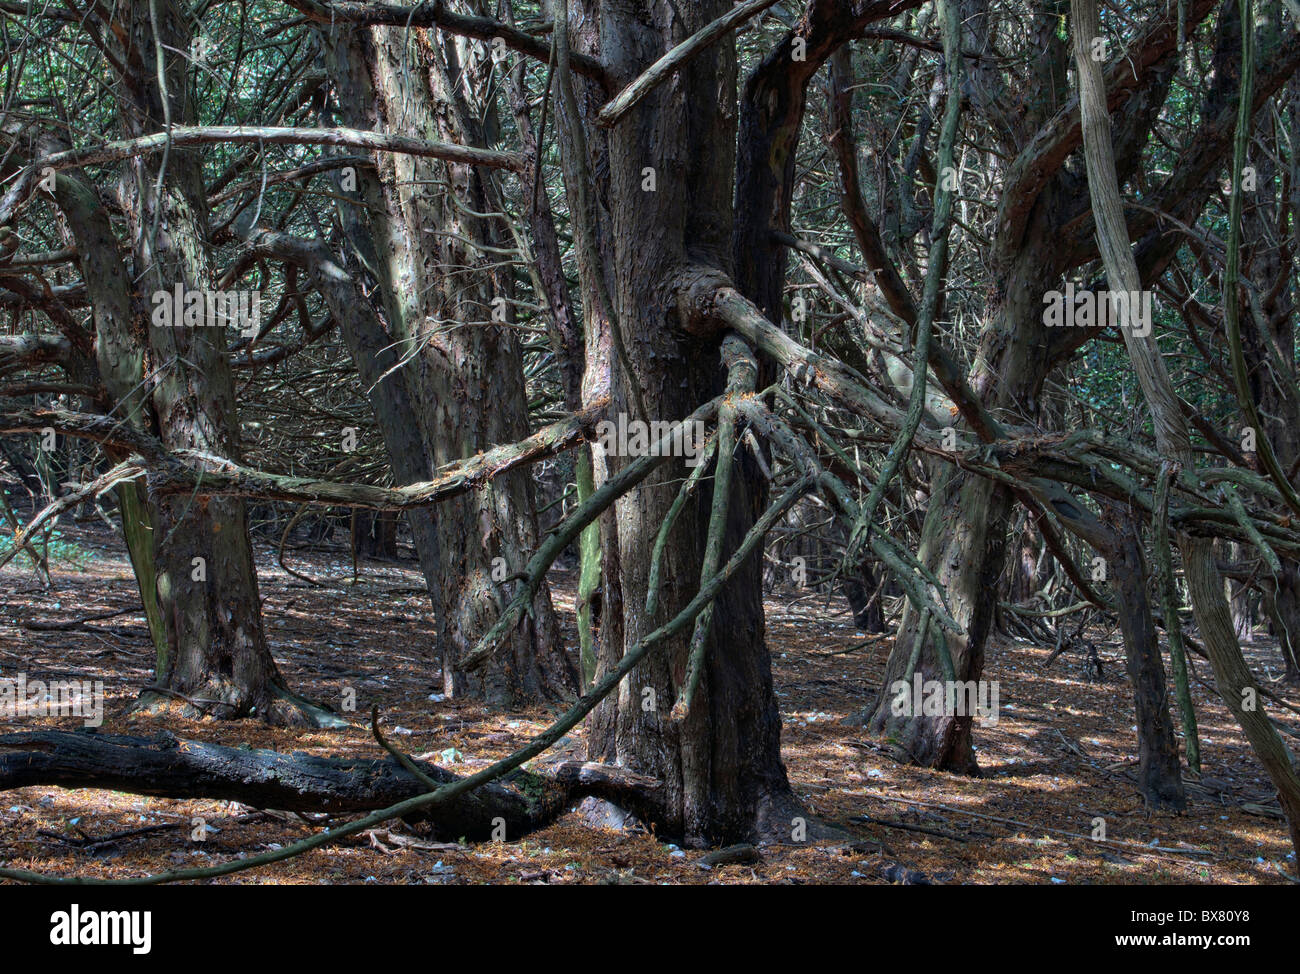 Yew Trees, Kingley Vale, West Sussex - Stock Image